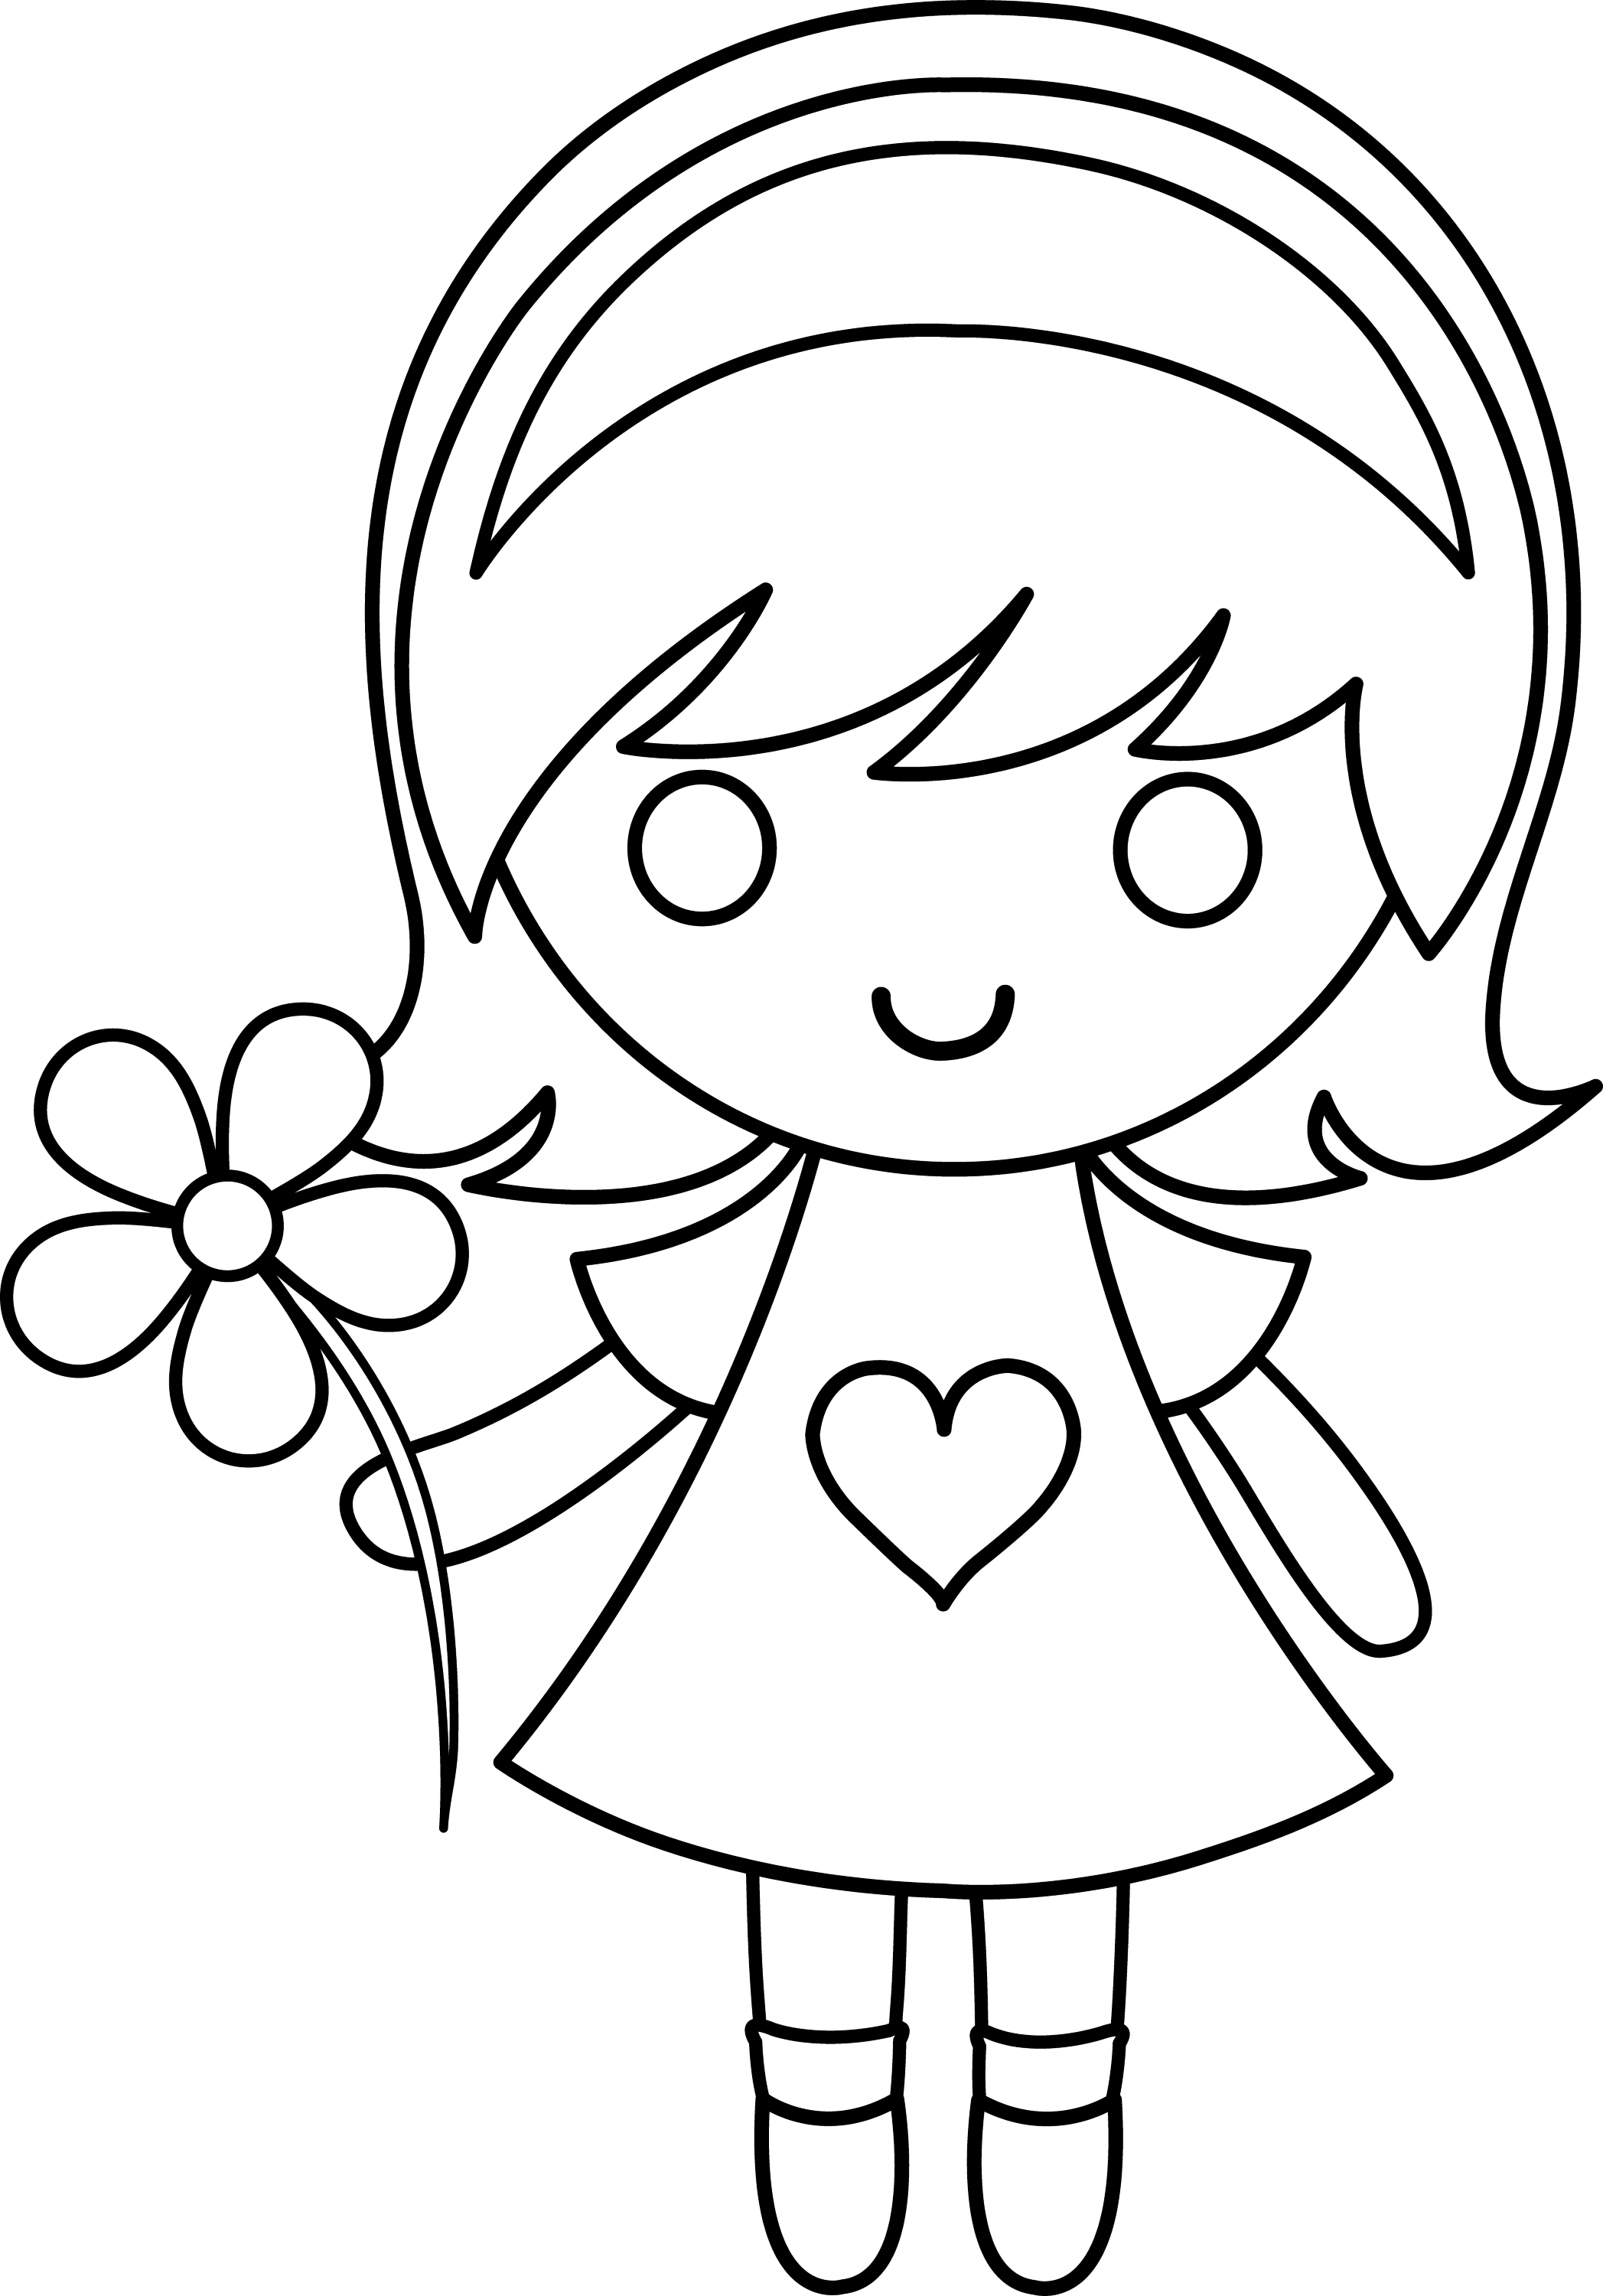 school girl coloring pages daisy girl colorable line art free clip art coloring girl school pages